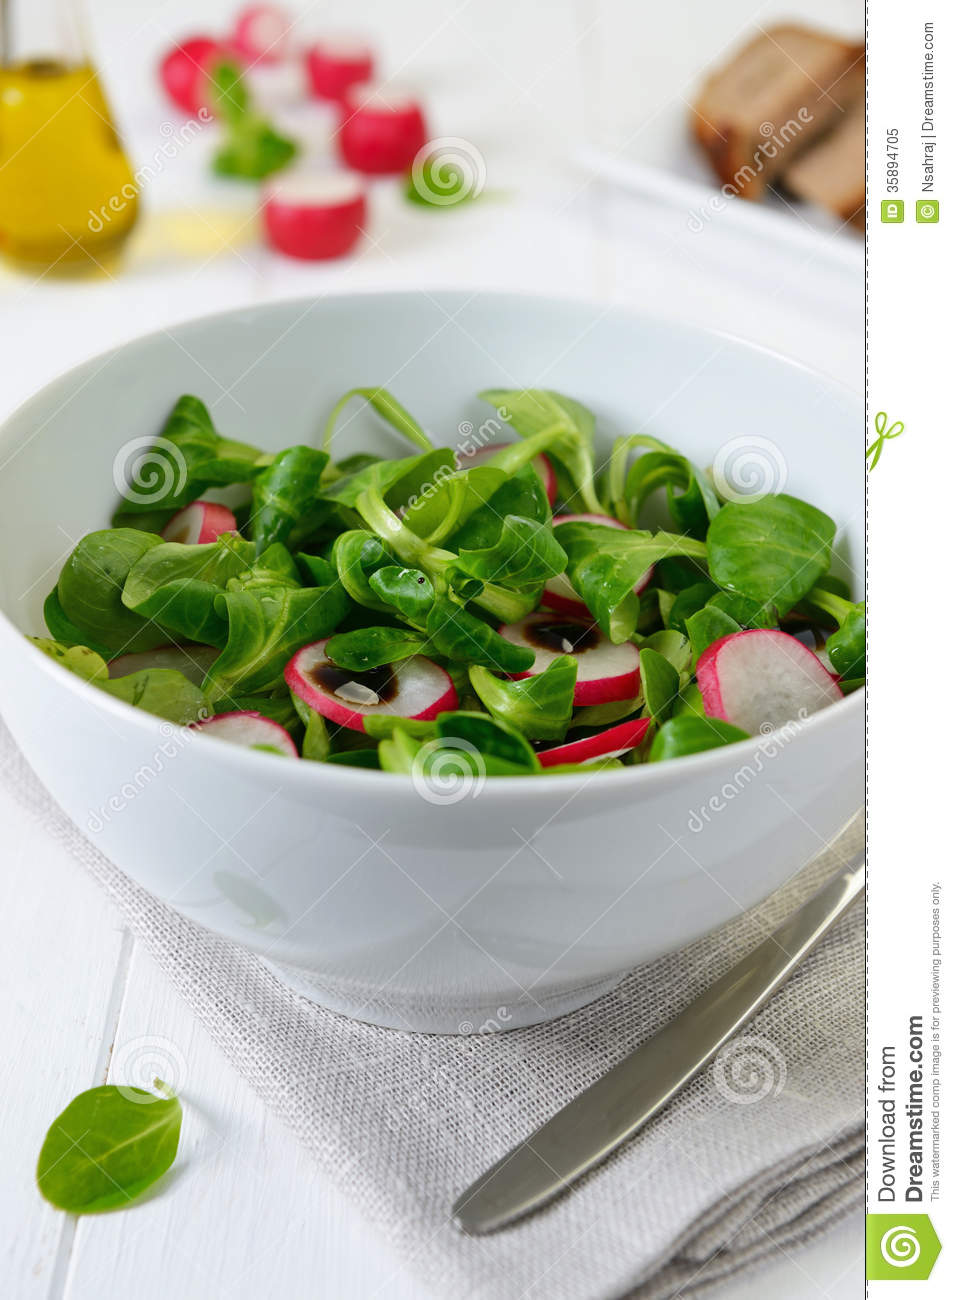 Royalty Free Stock Photo: Salad with radish